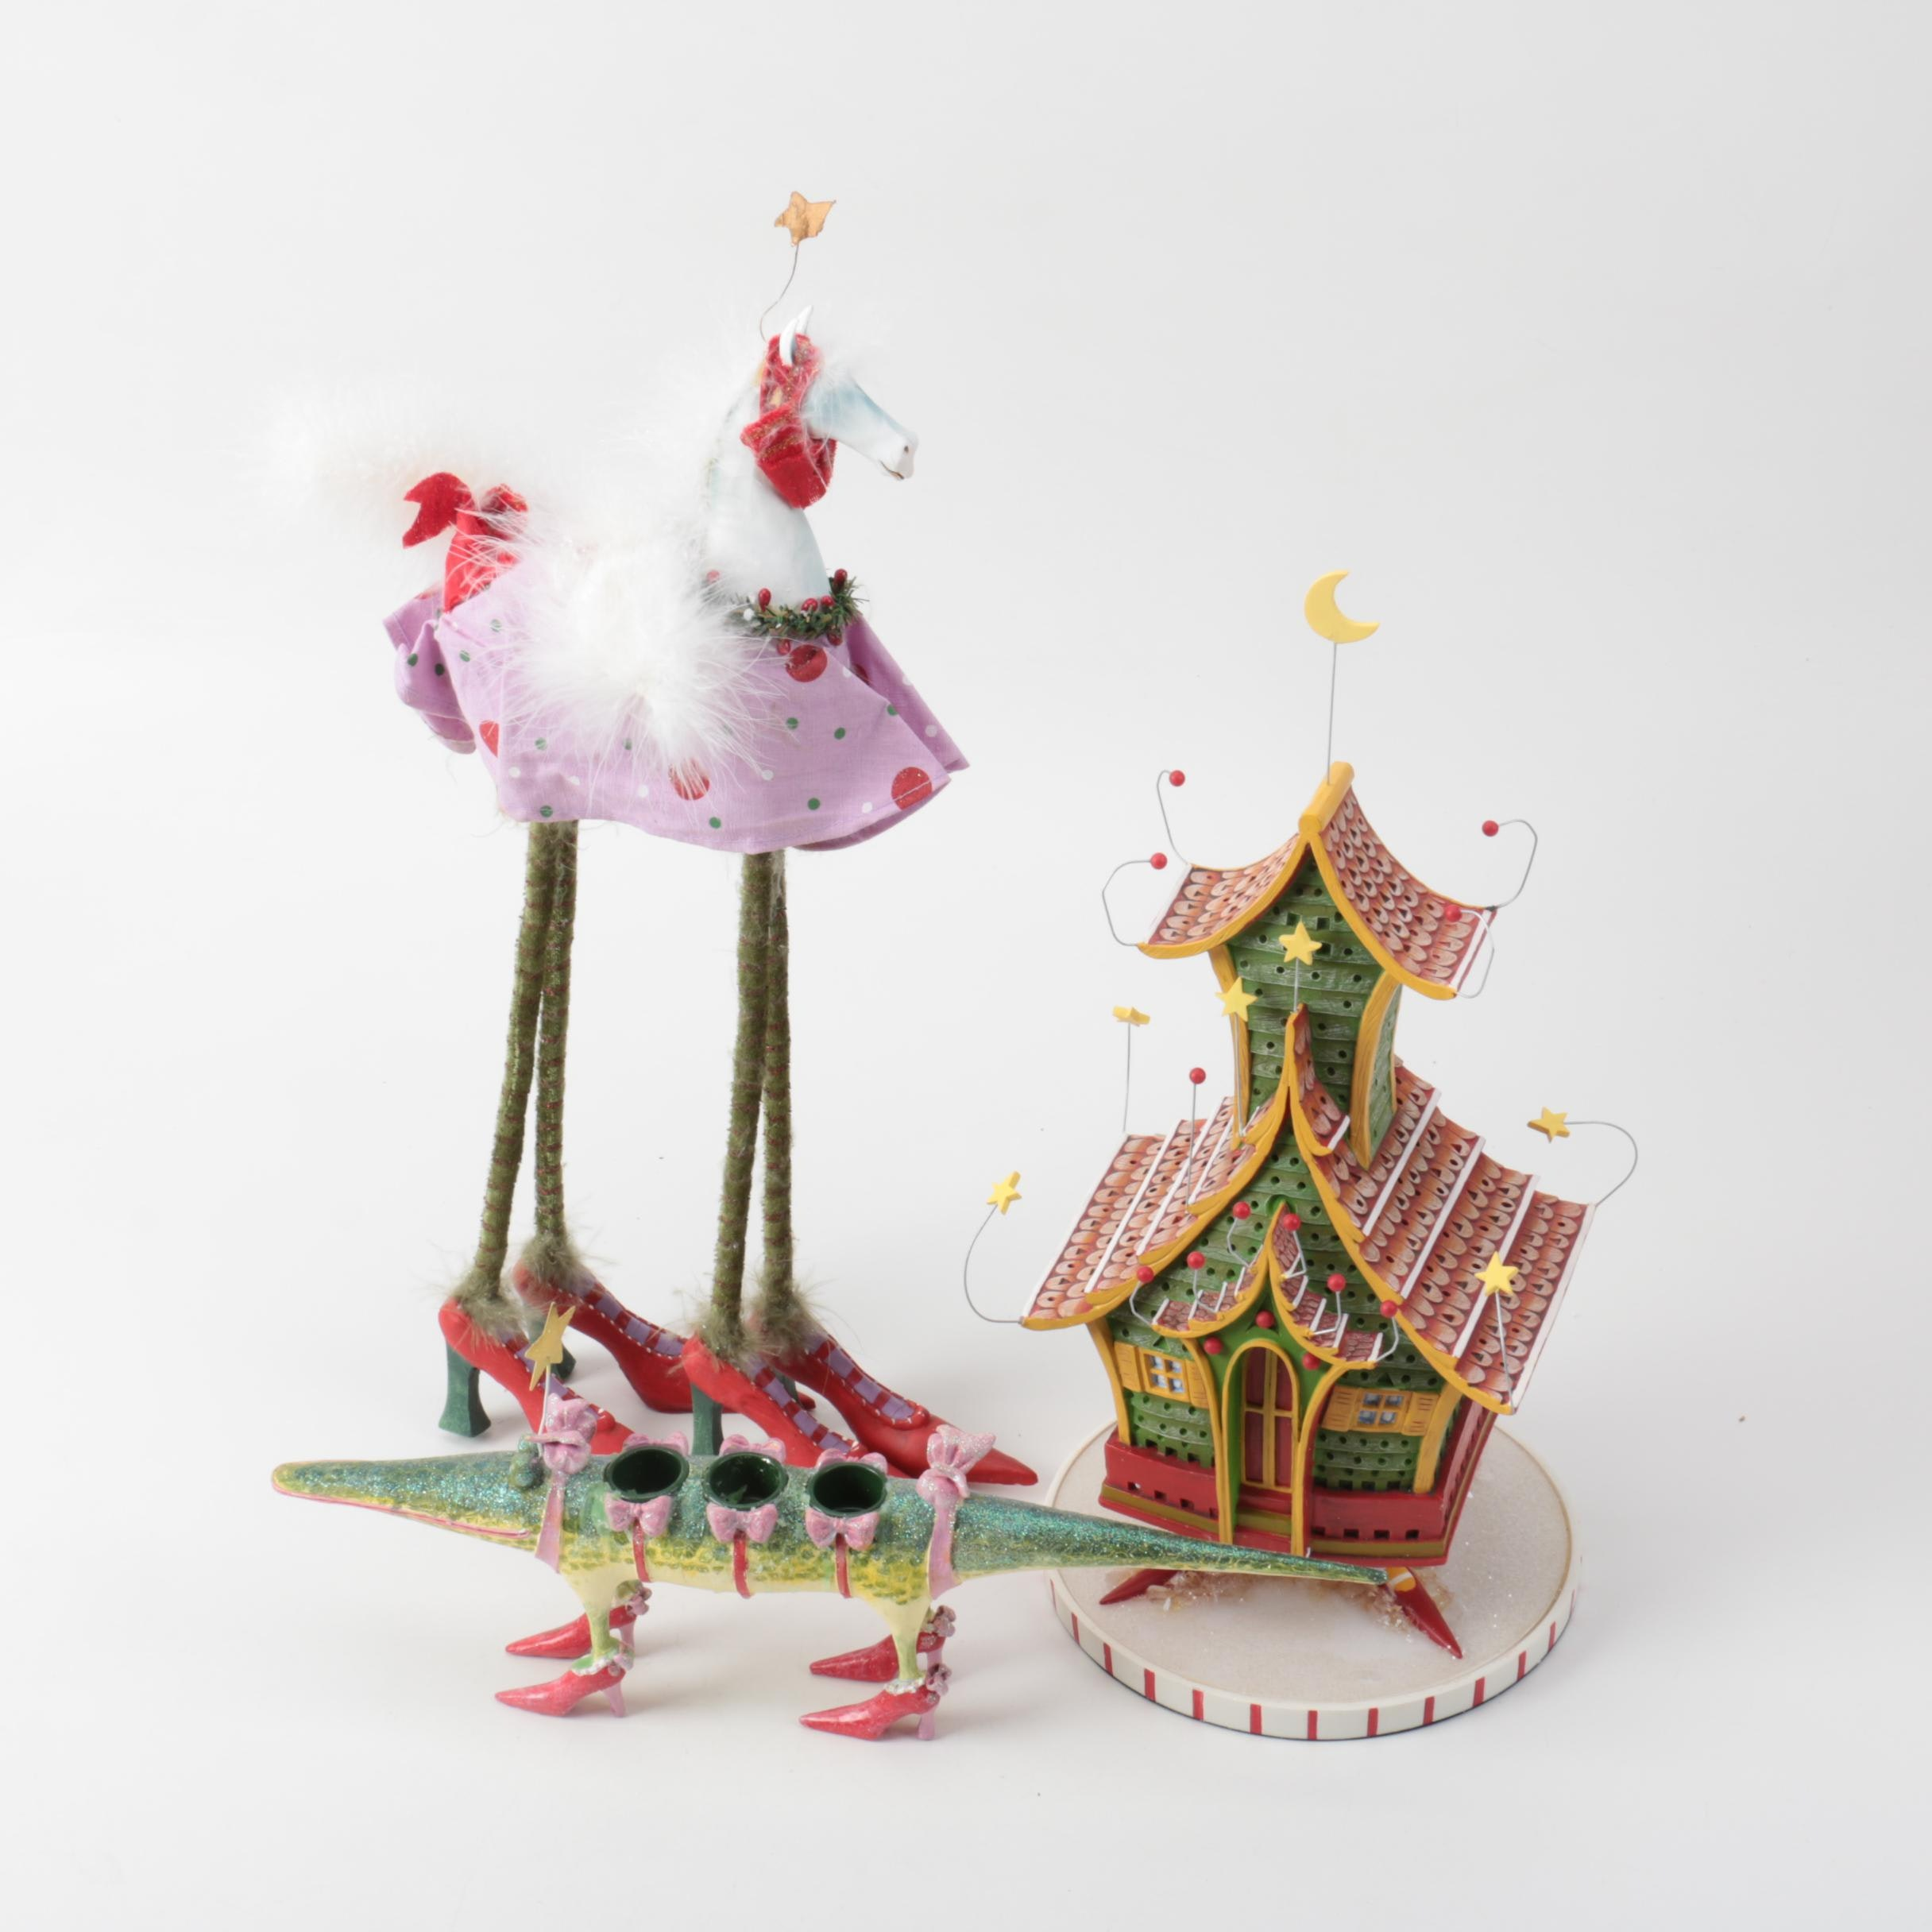 Department 56 Holiday Figures